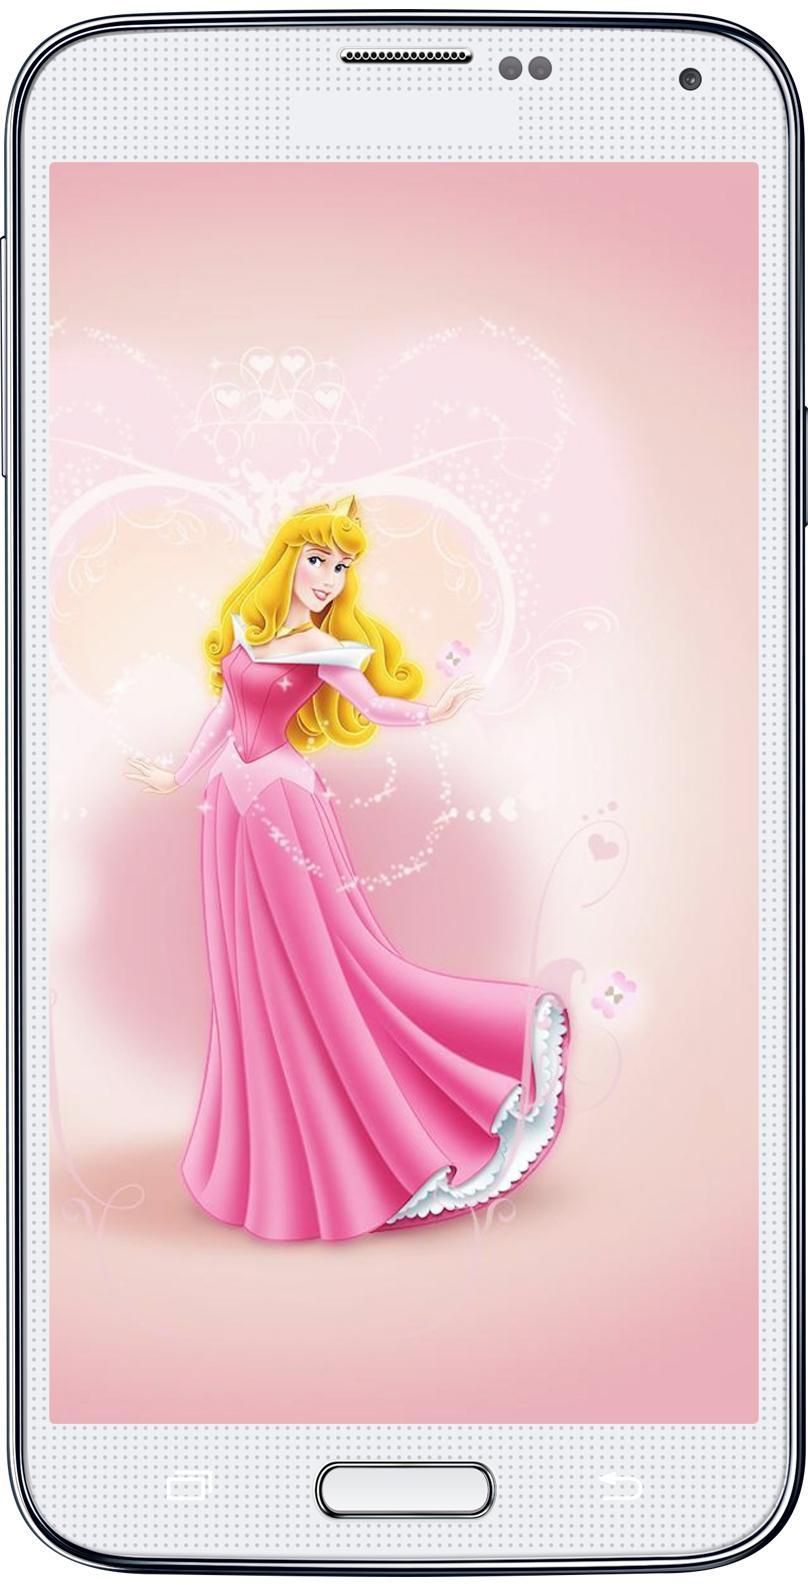 Hd Disney Princess Wallpapers For Android Apk Download